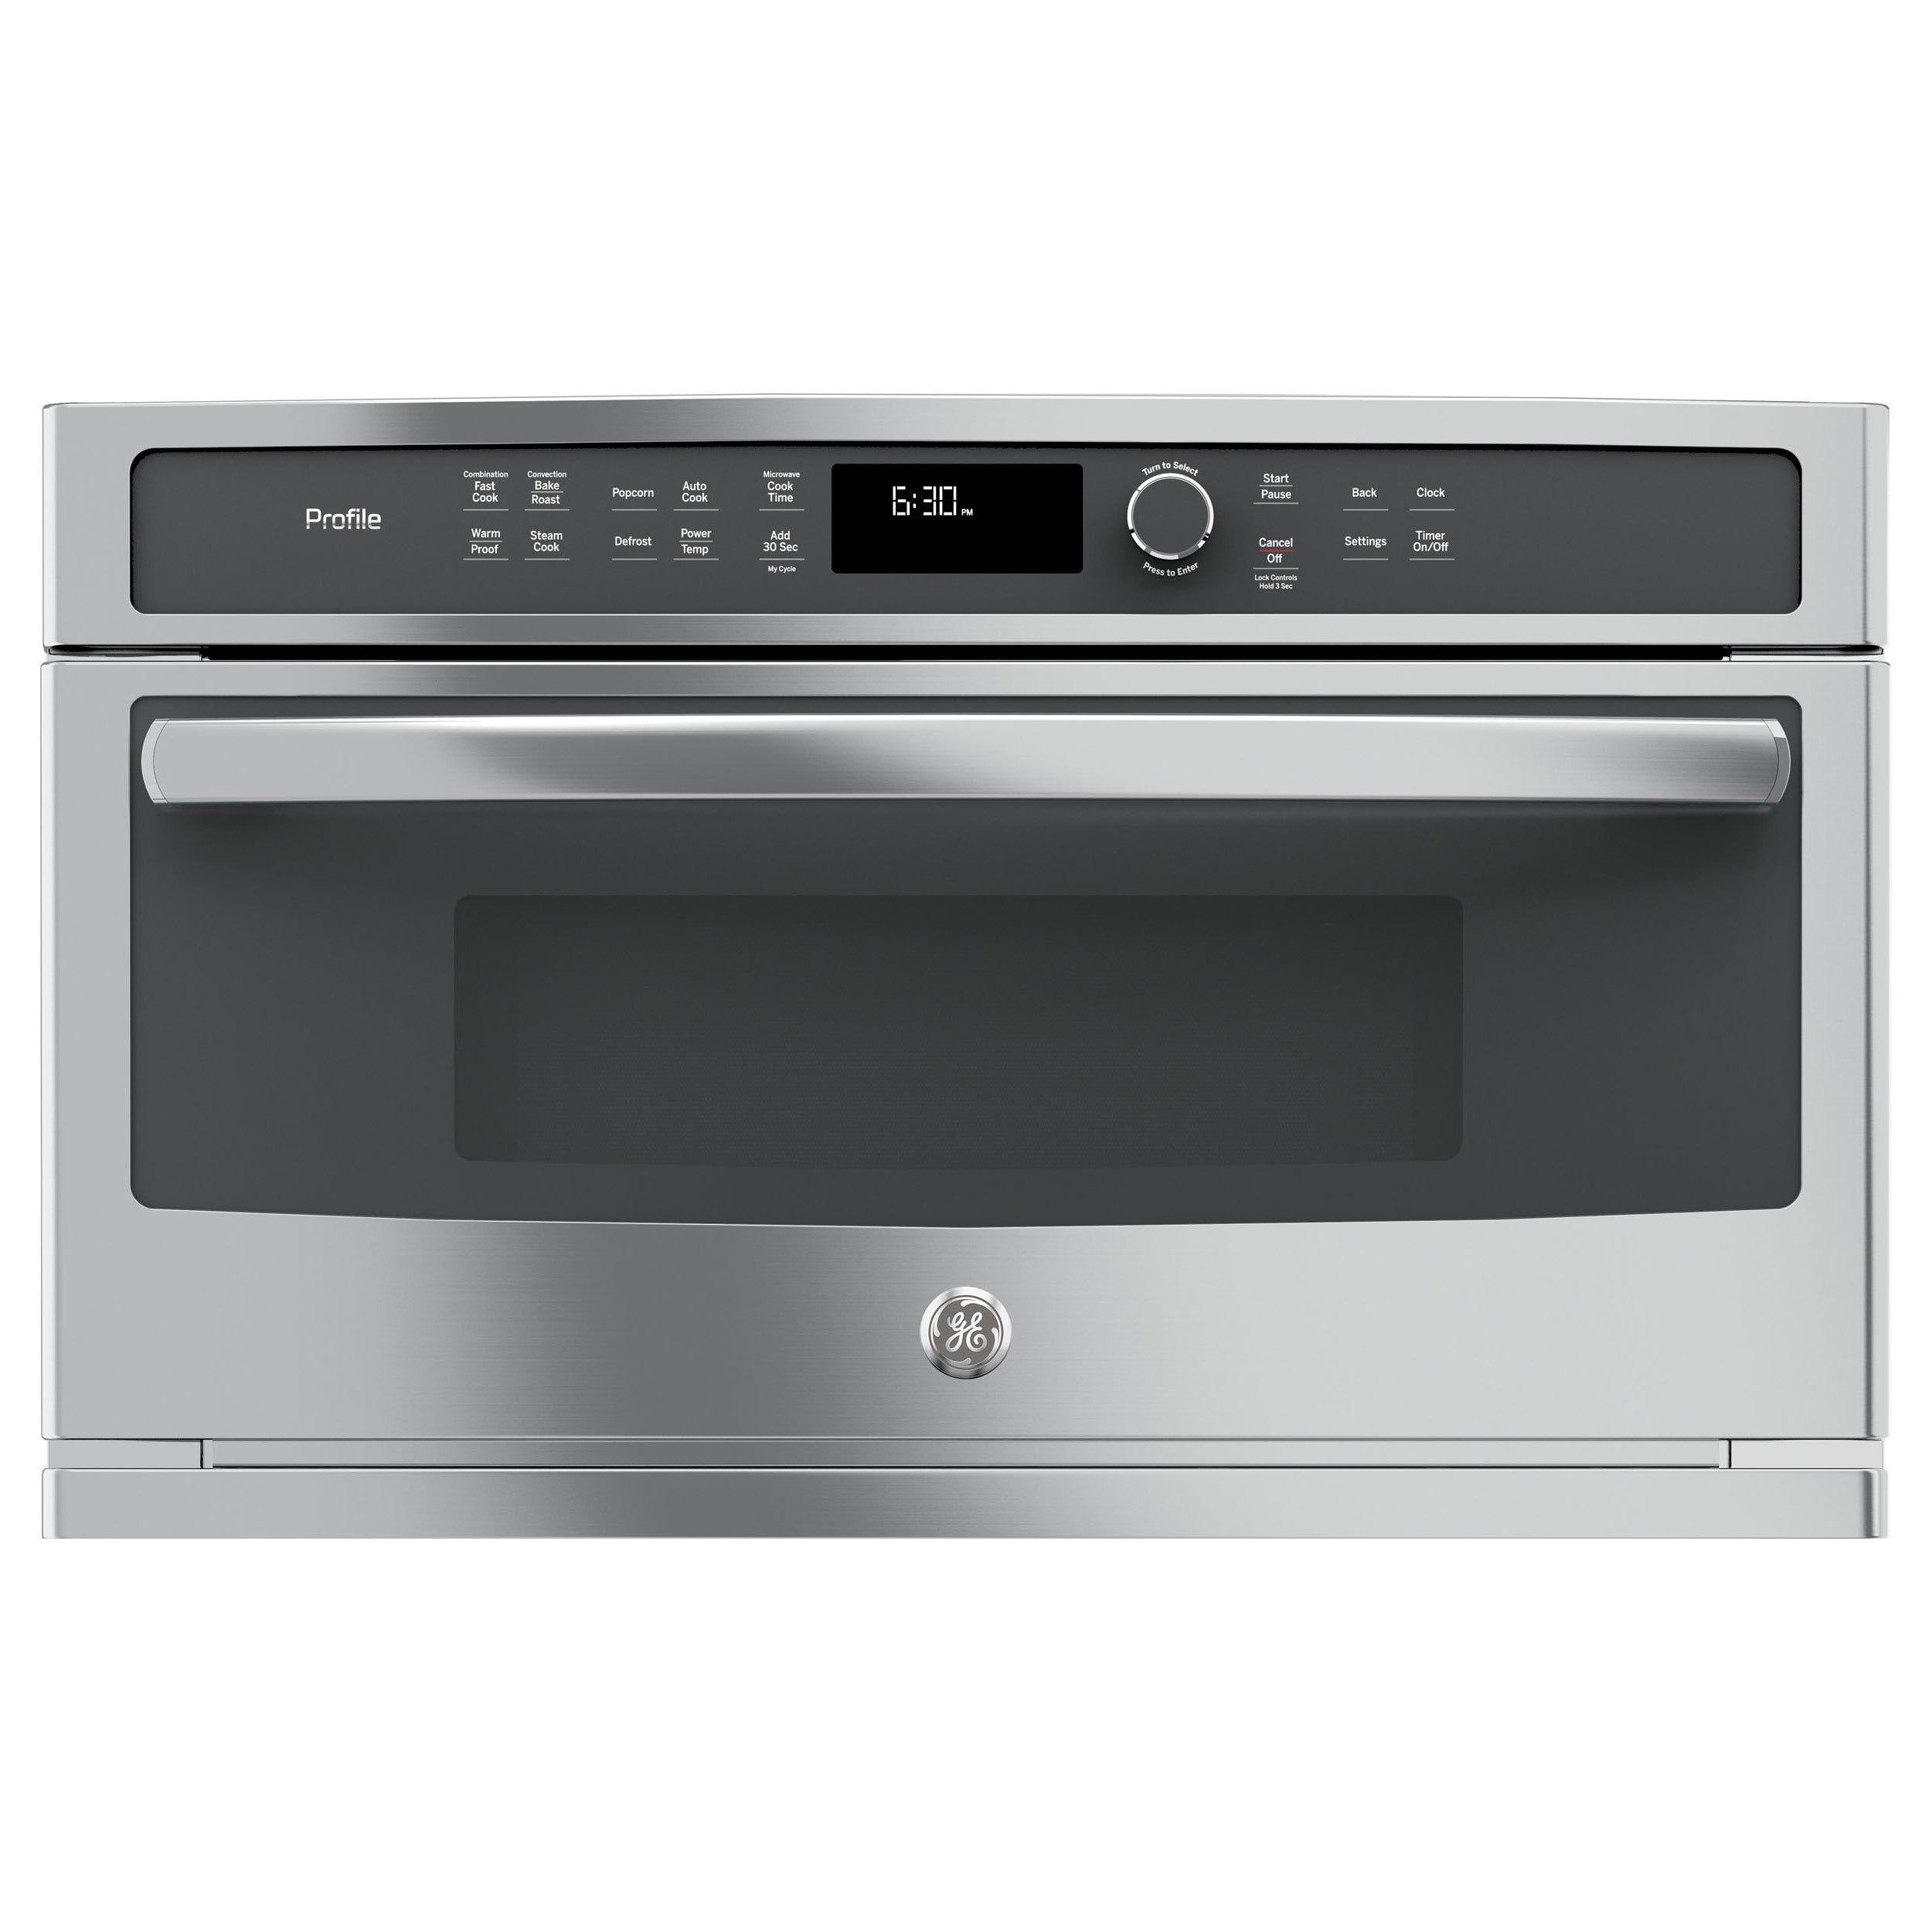 Ge Profile Microwave Oven Combo Problems Bestmicrowave